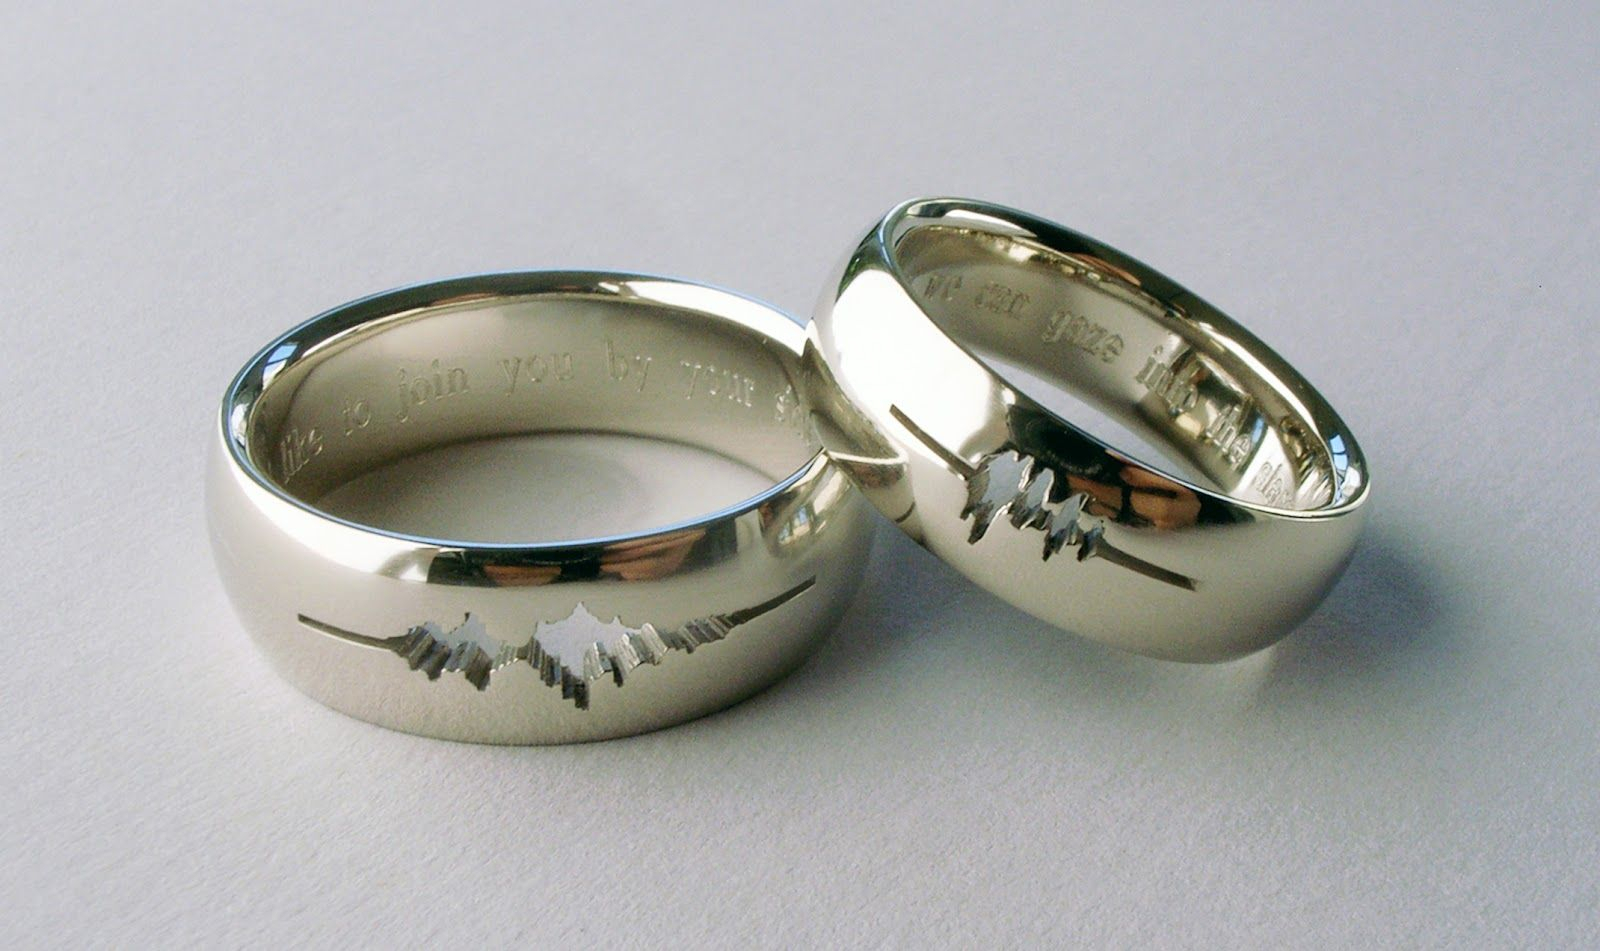 A Couple Had Their Wedding Rings Engraved With A Waveform Of Regarding Most Current Wave Diamond Wedding Bands (View 9 of 25)